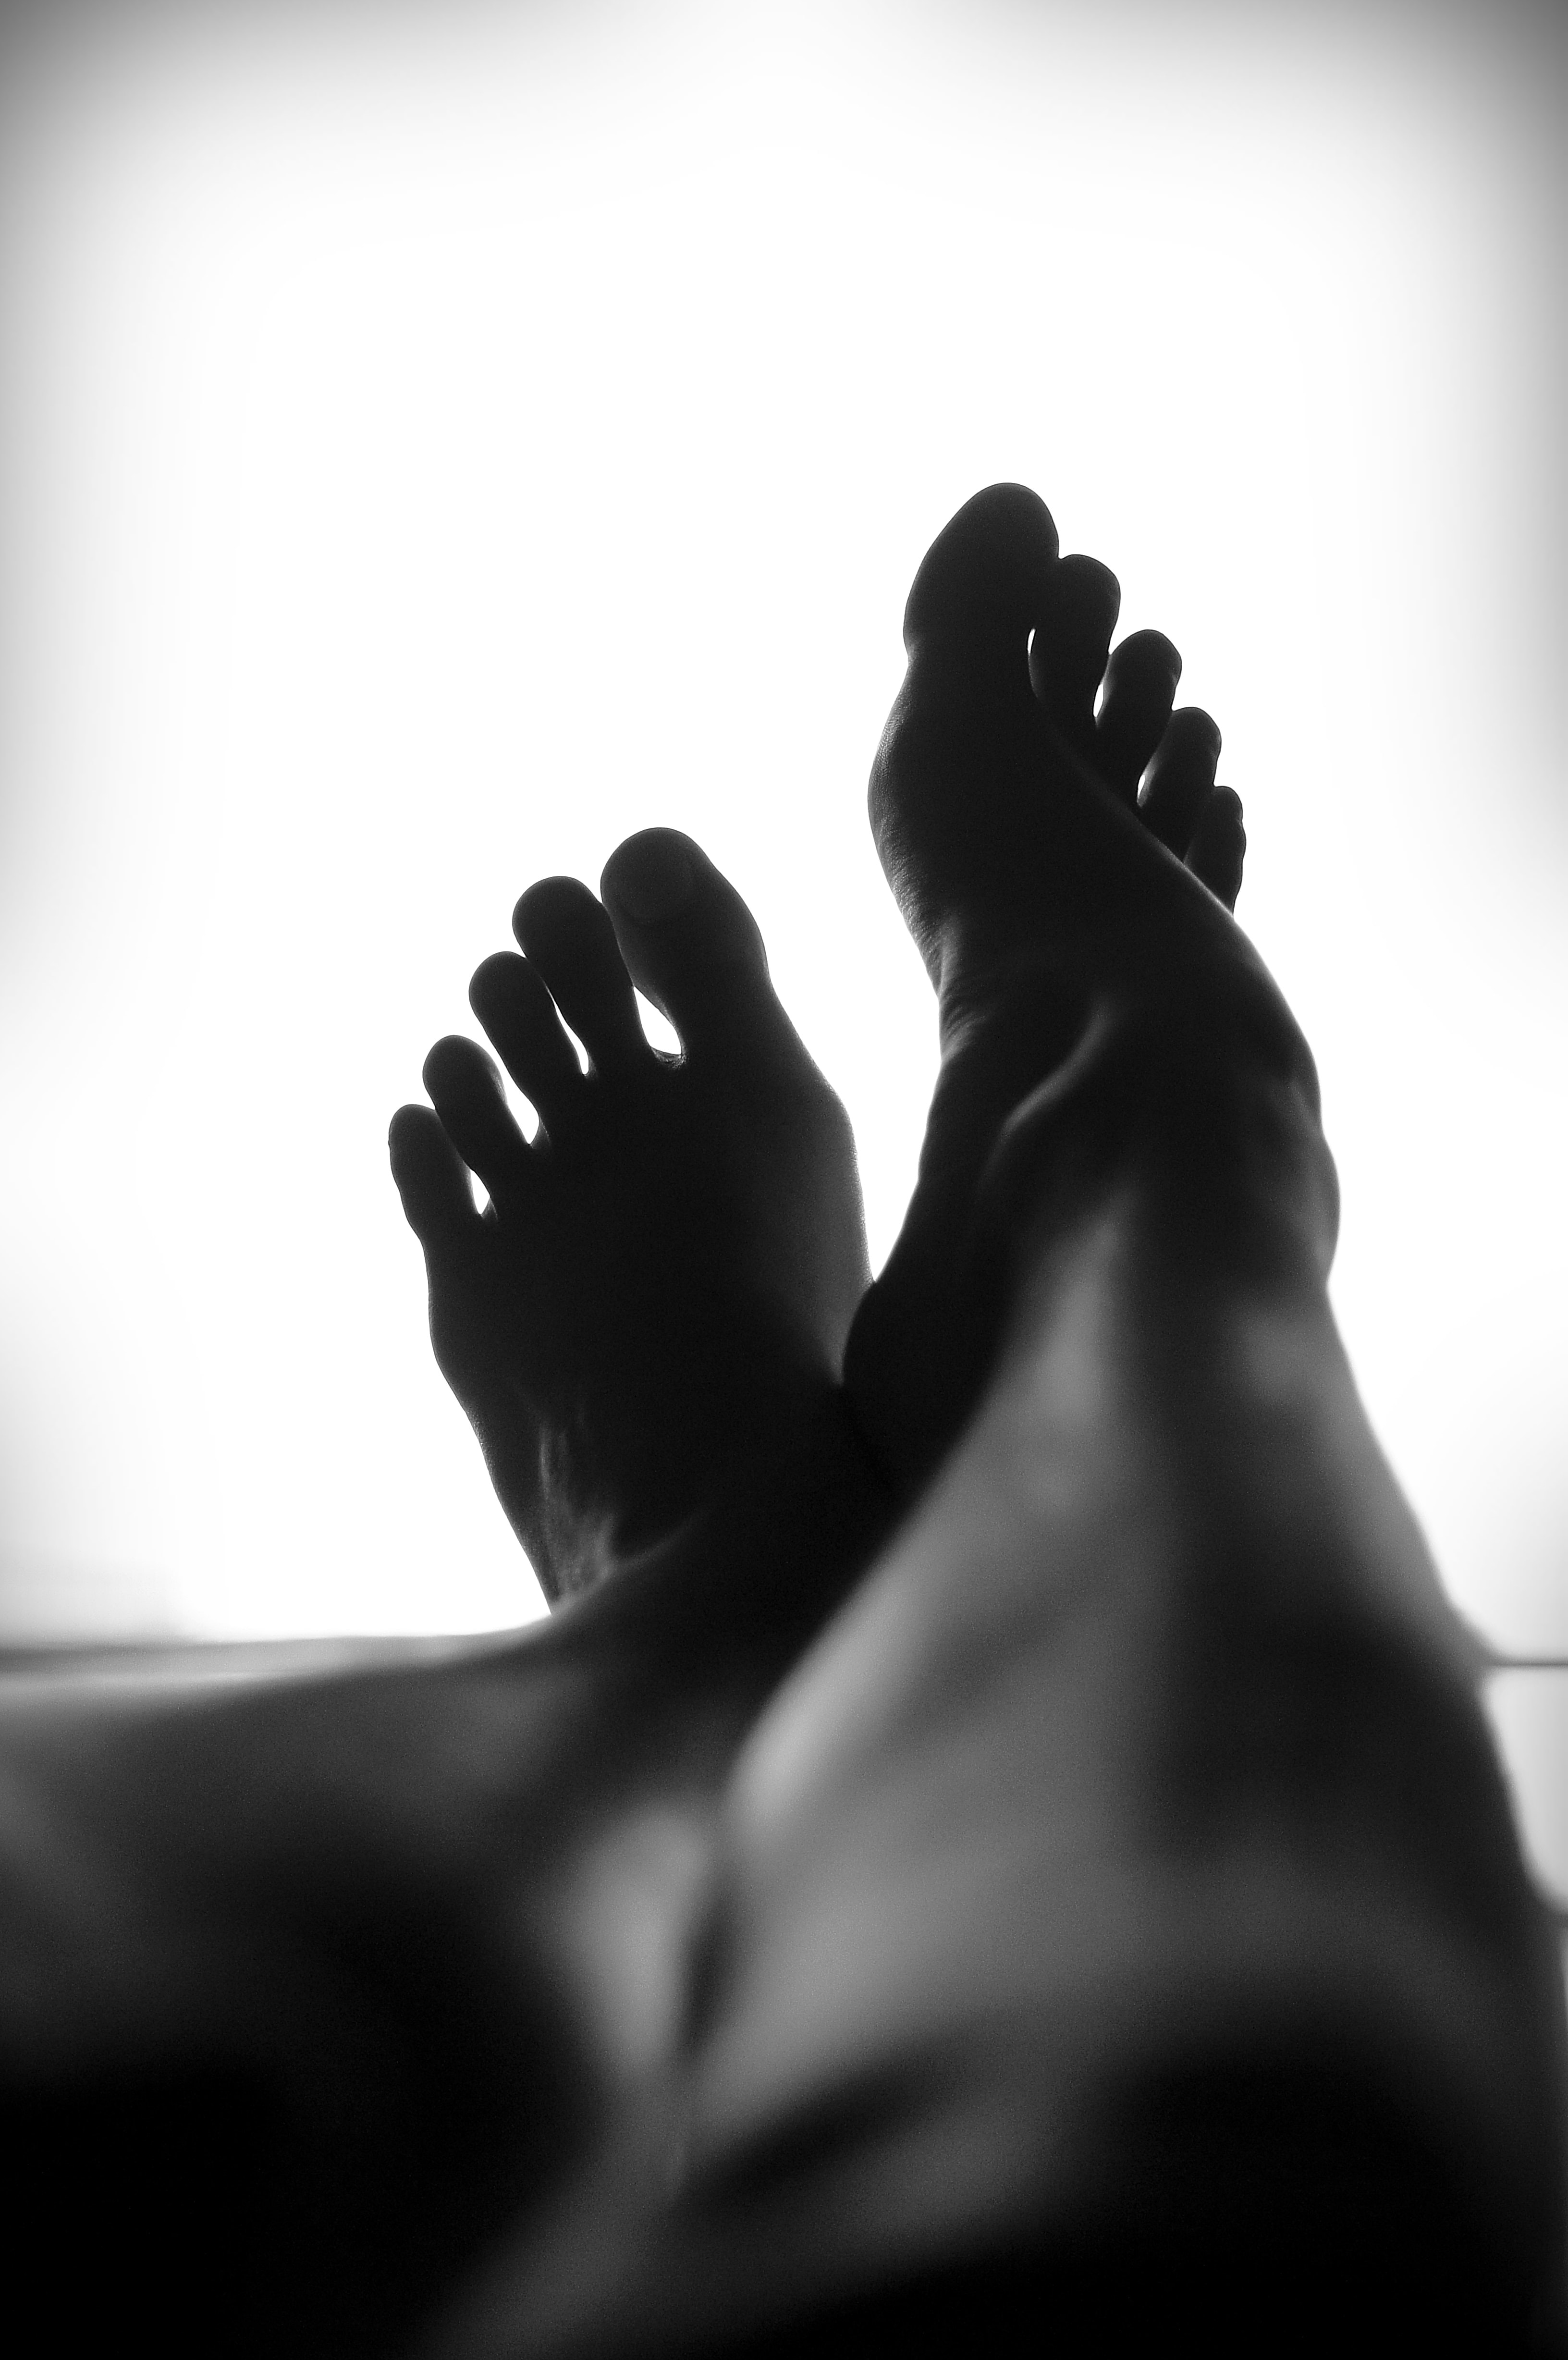 Silhouette of feet and legs in the shadow